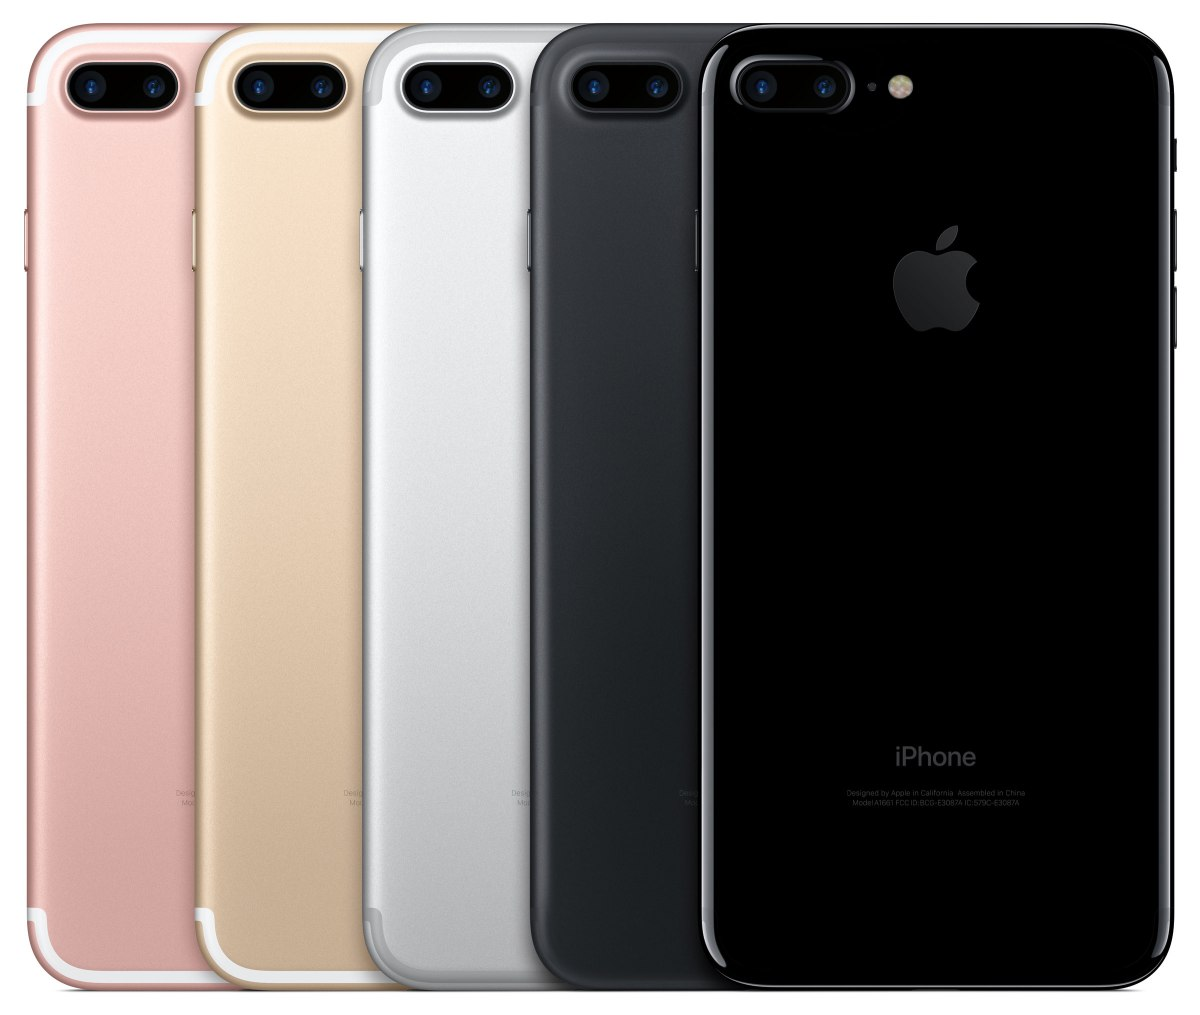 iPhone7Plus-Lineup-PB_PR-PRINT.jpg